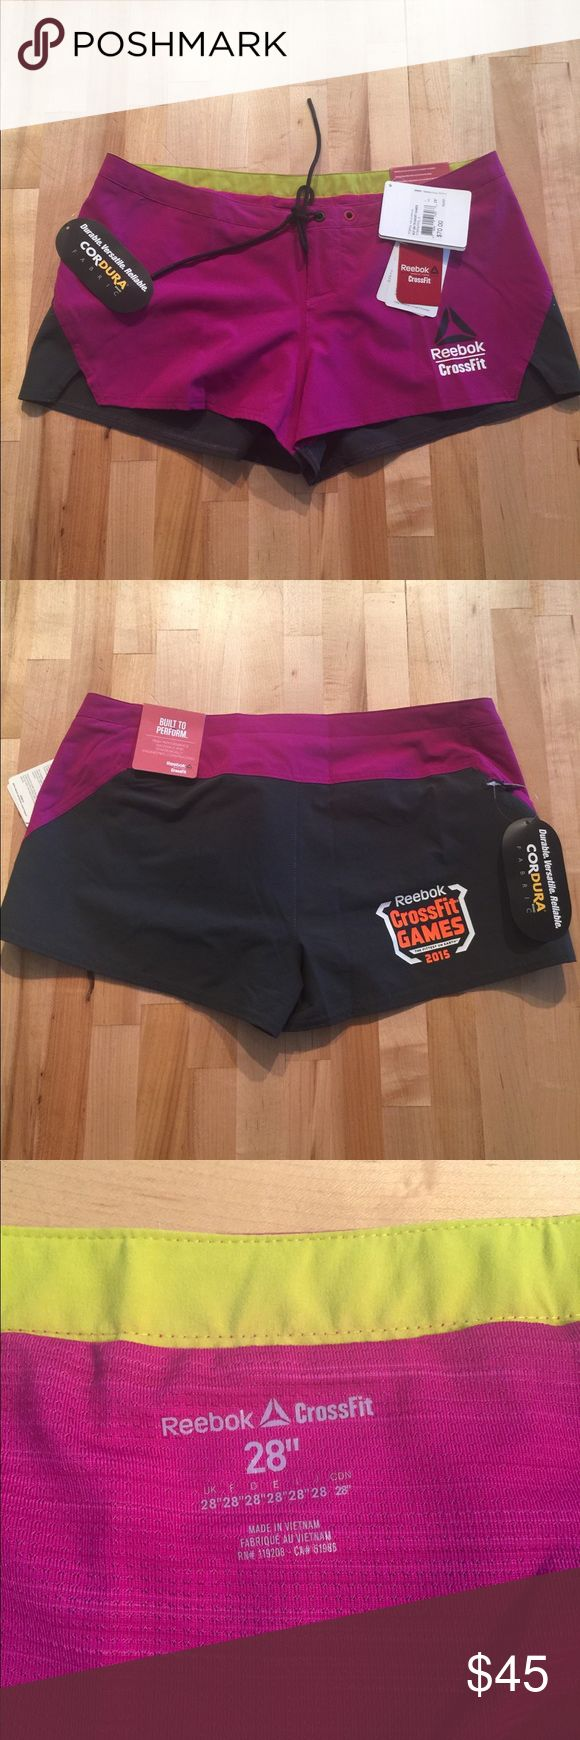 Women's Reebok CrossFit shorts 28 inches Brand new with tags. Reebok 2015 CrossFit shorts. 28 inches waist. Reebok Shorts